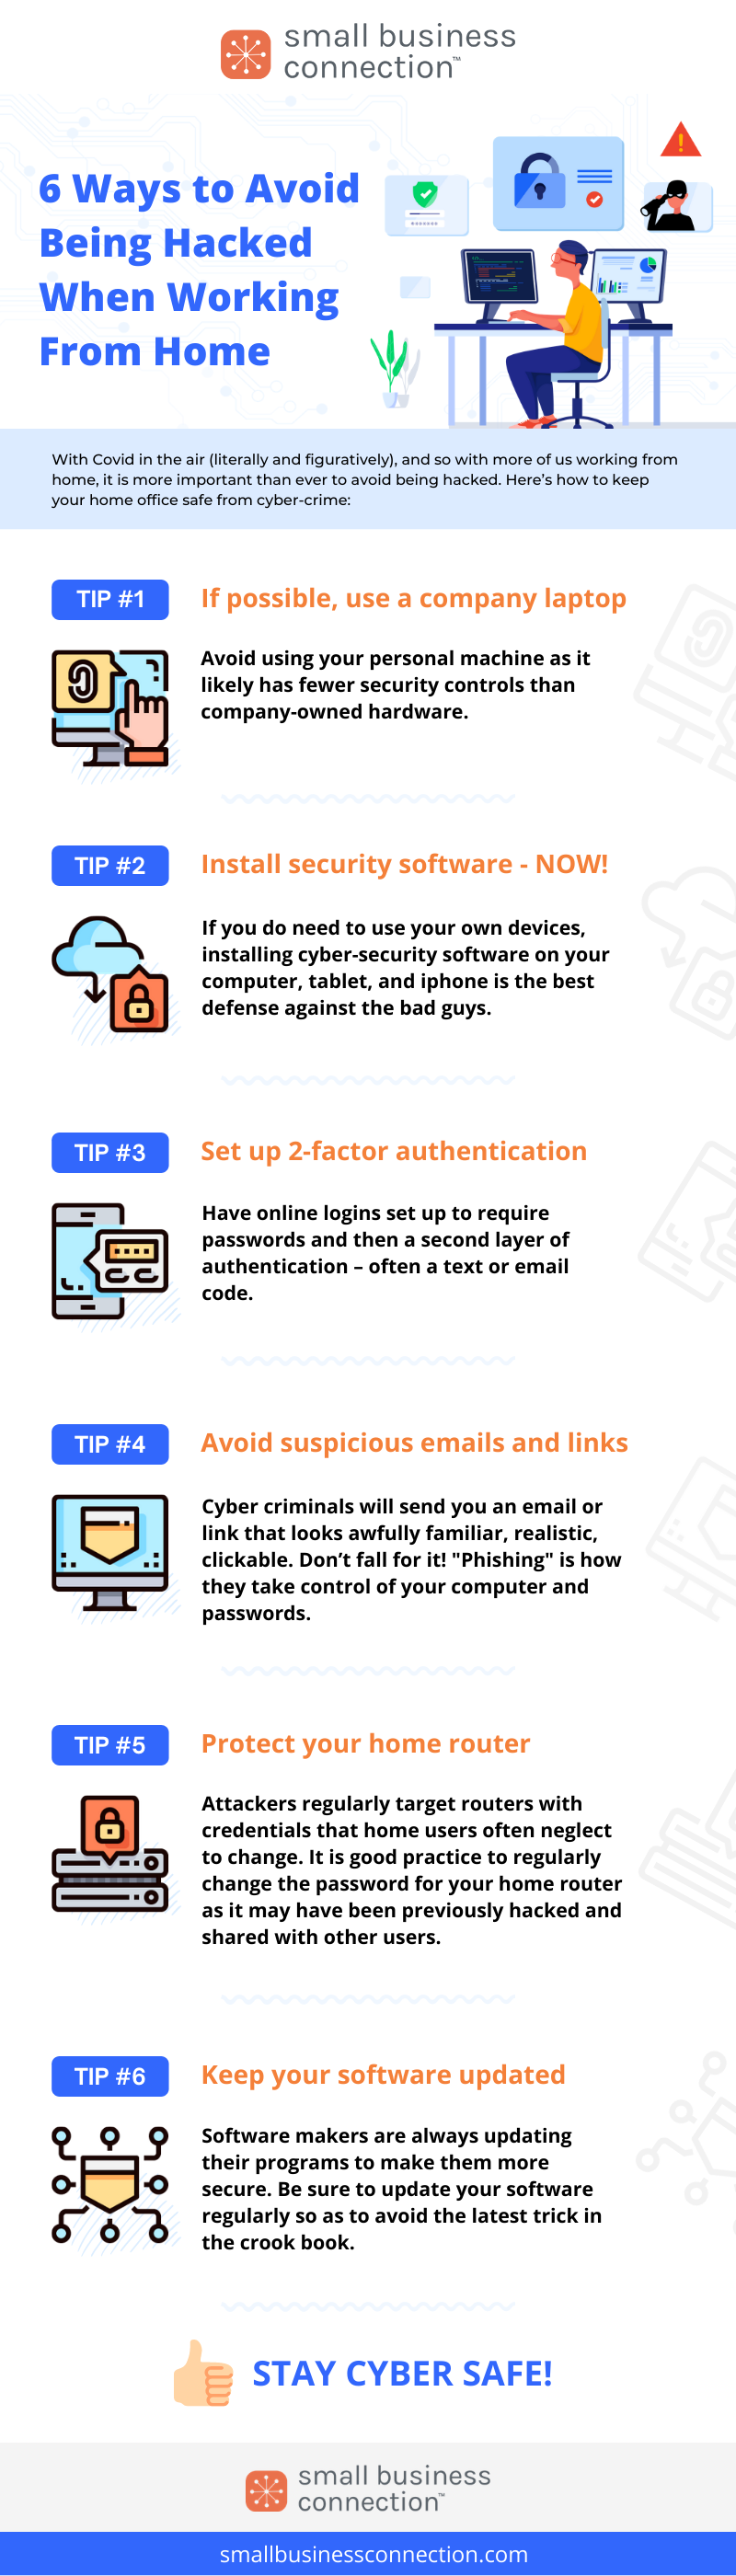 Infographic: 6 Ways to Avoid Being Hacked When Working From Home